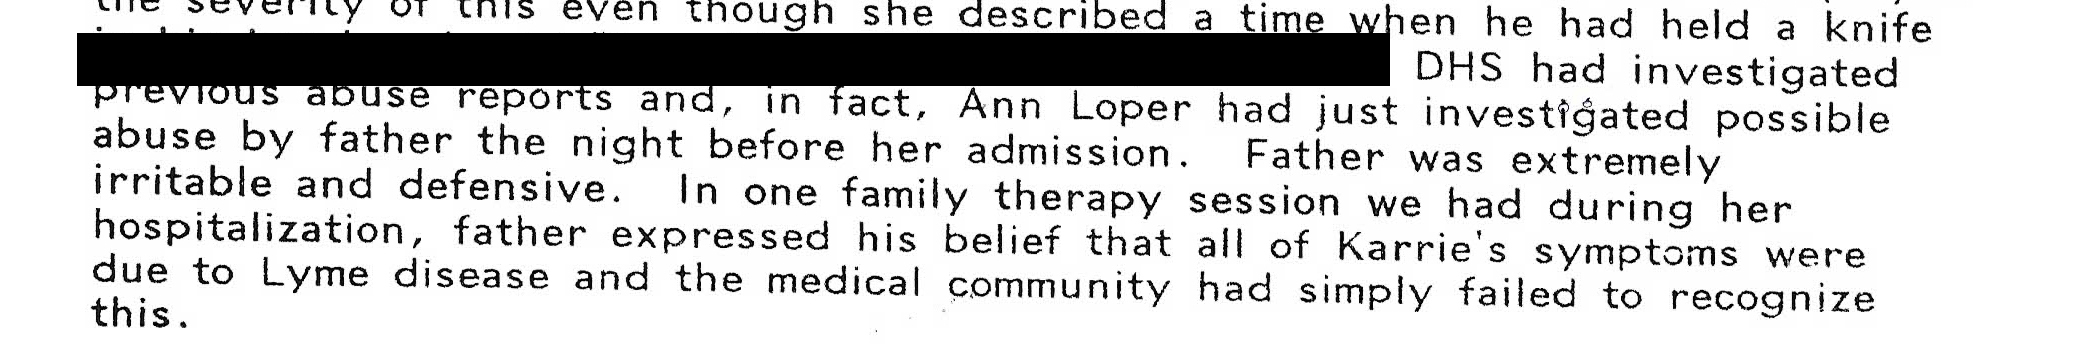 """scan from medical record stating, """"DHS had investigated previous abuse reports and, in fact, Ann Loper had just investigated possible abuse by father the night before her admission."""""""